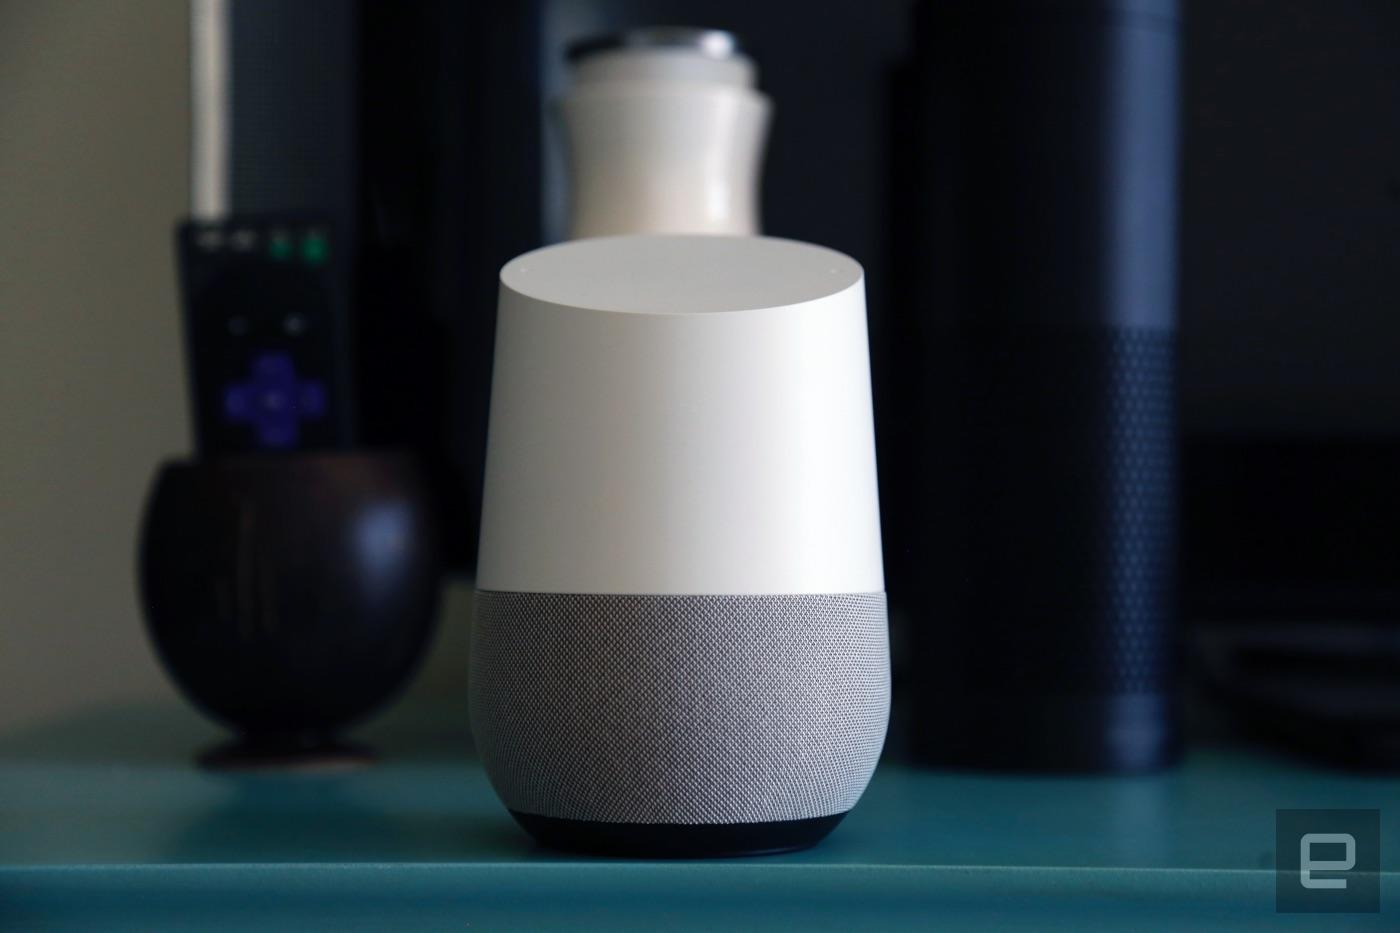 Pros and cons: Our quick verdict on Google Home